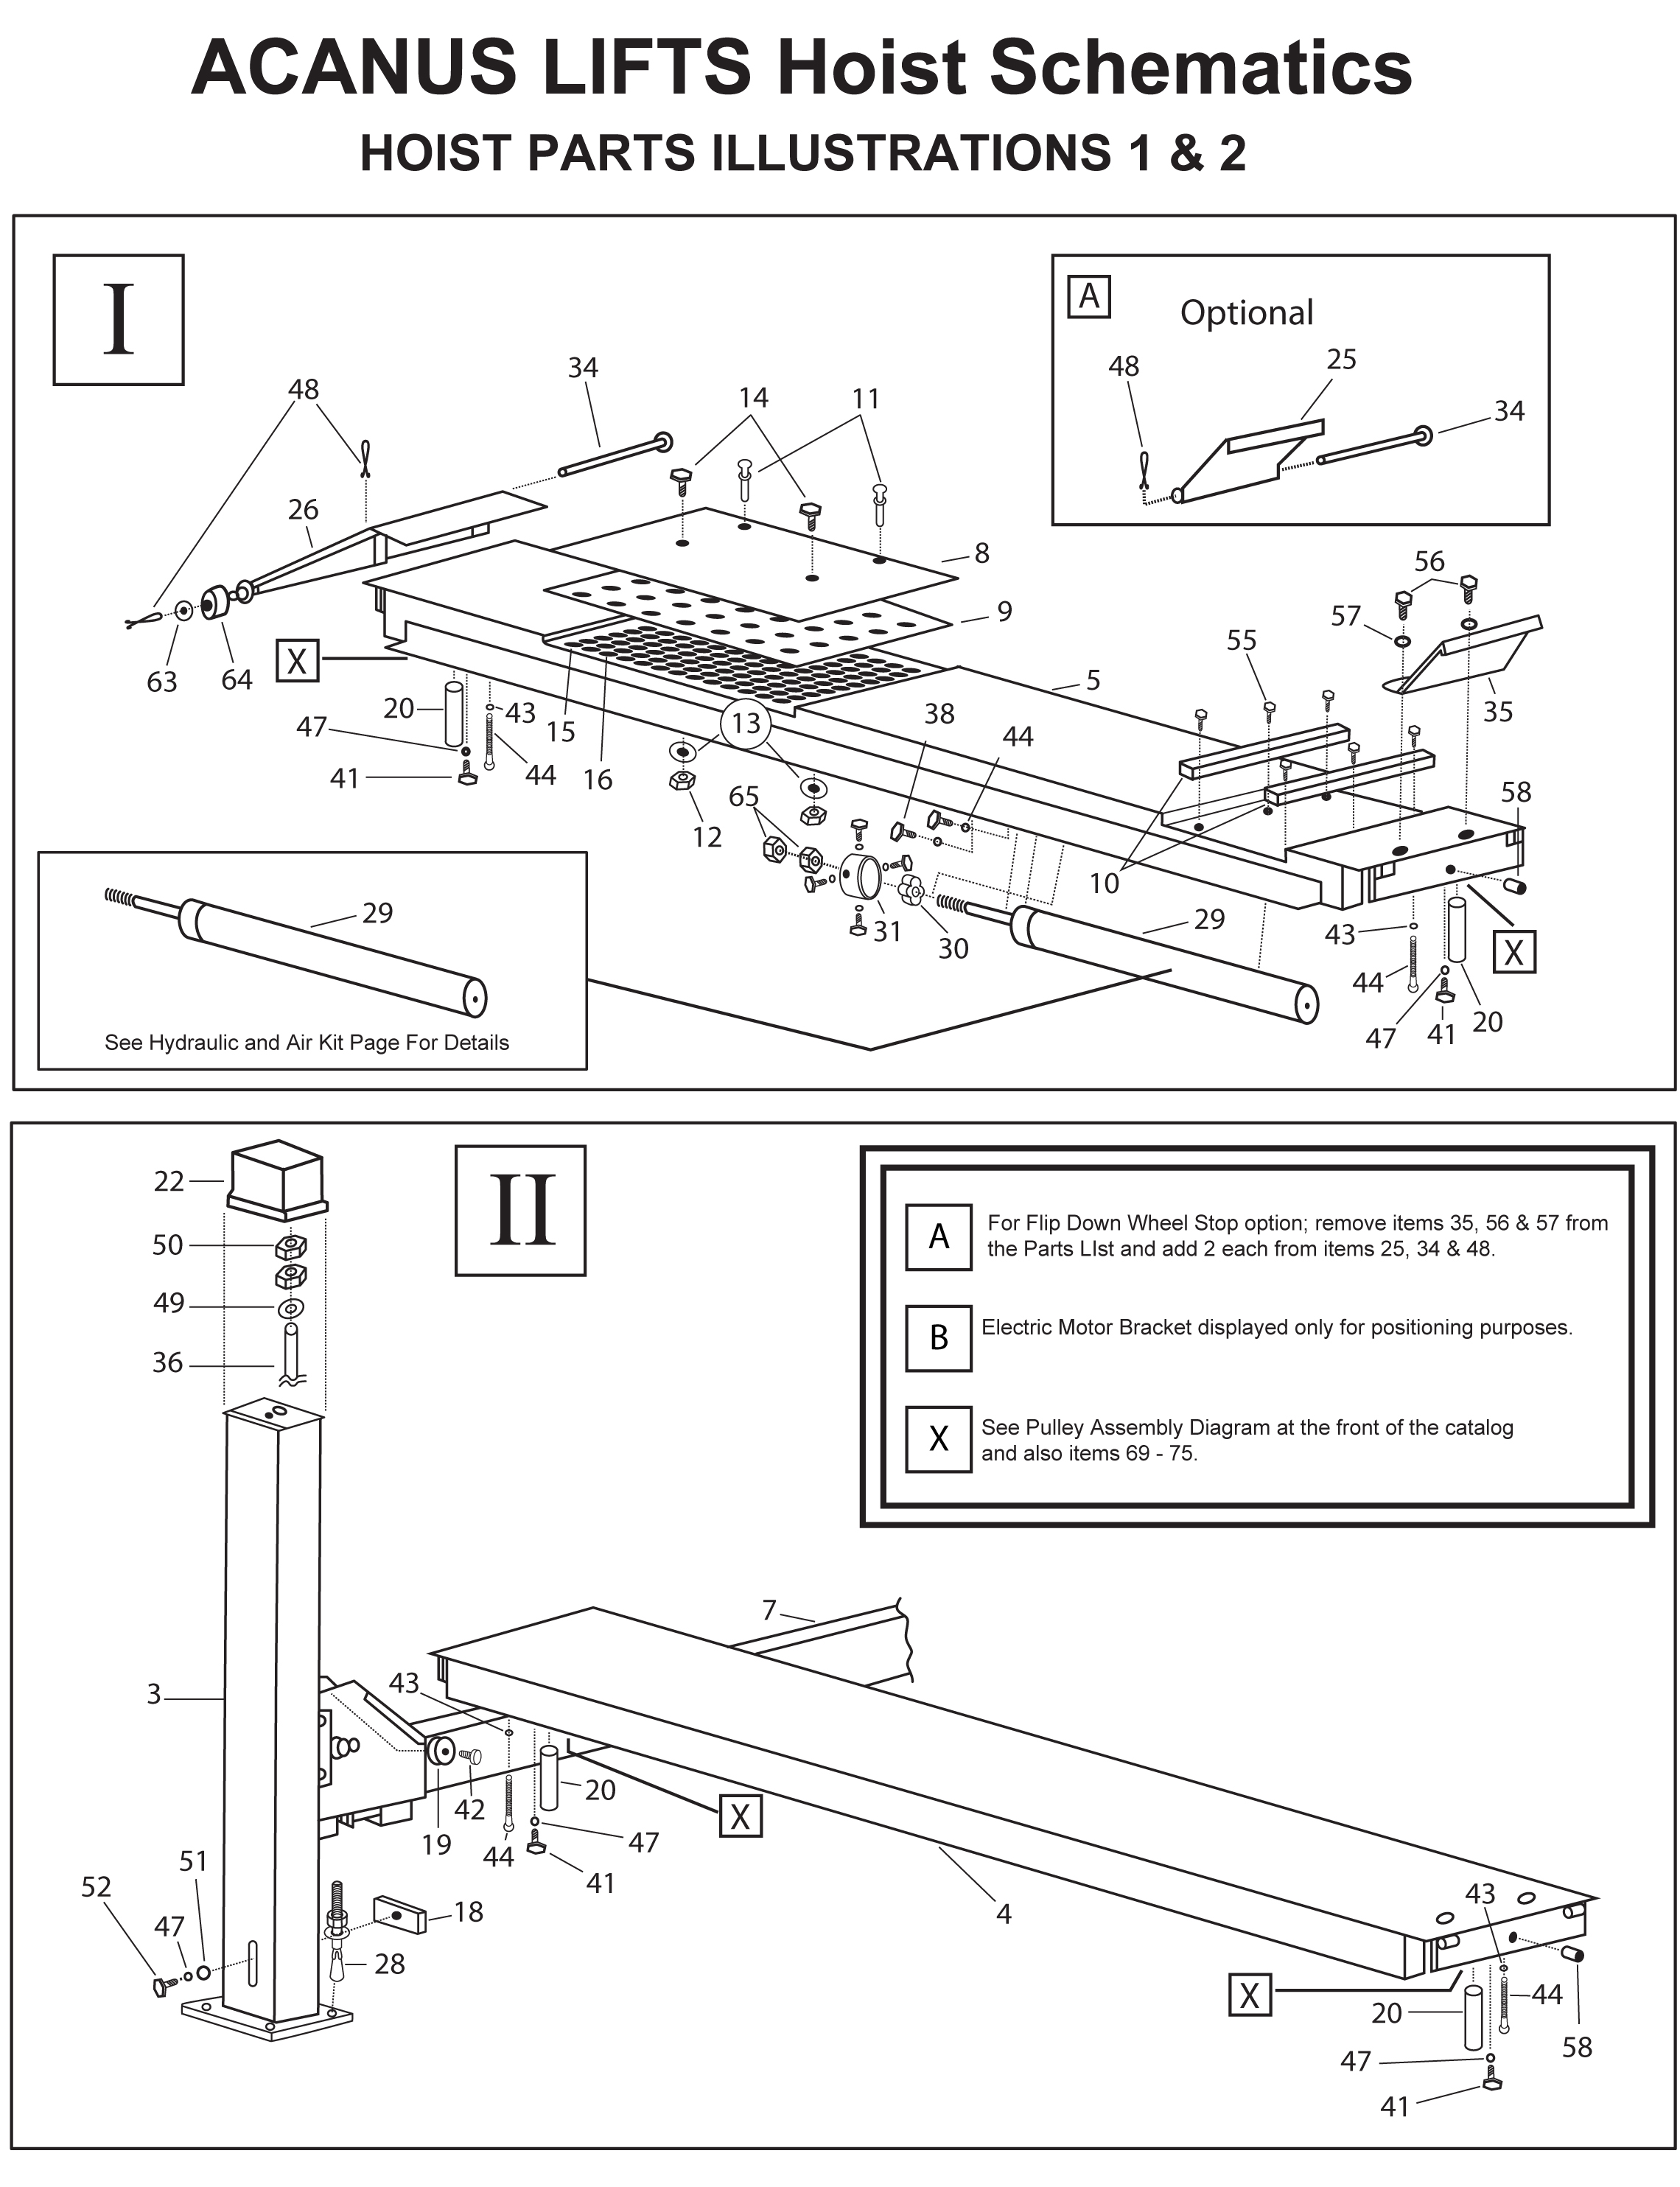 Turner 22 flail mower service manual ebook array larin floor jack parts manual ebook rh larin floor jack parts manual ebook argodata fandeluxe Gallery